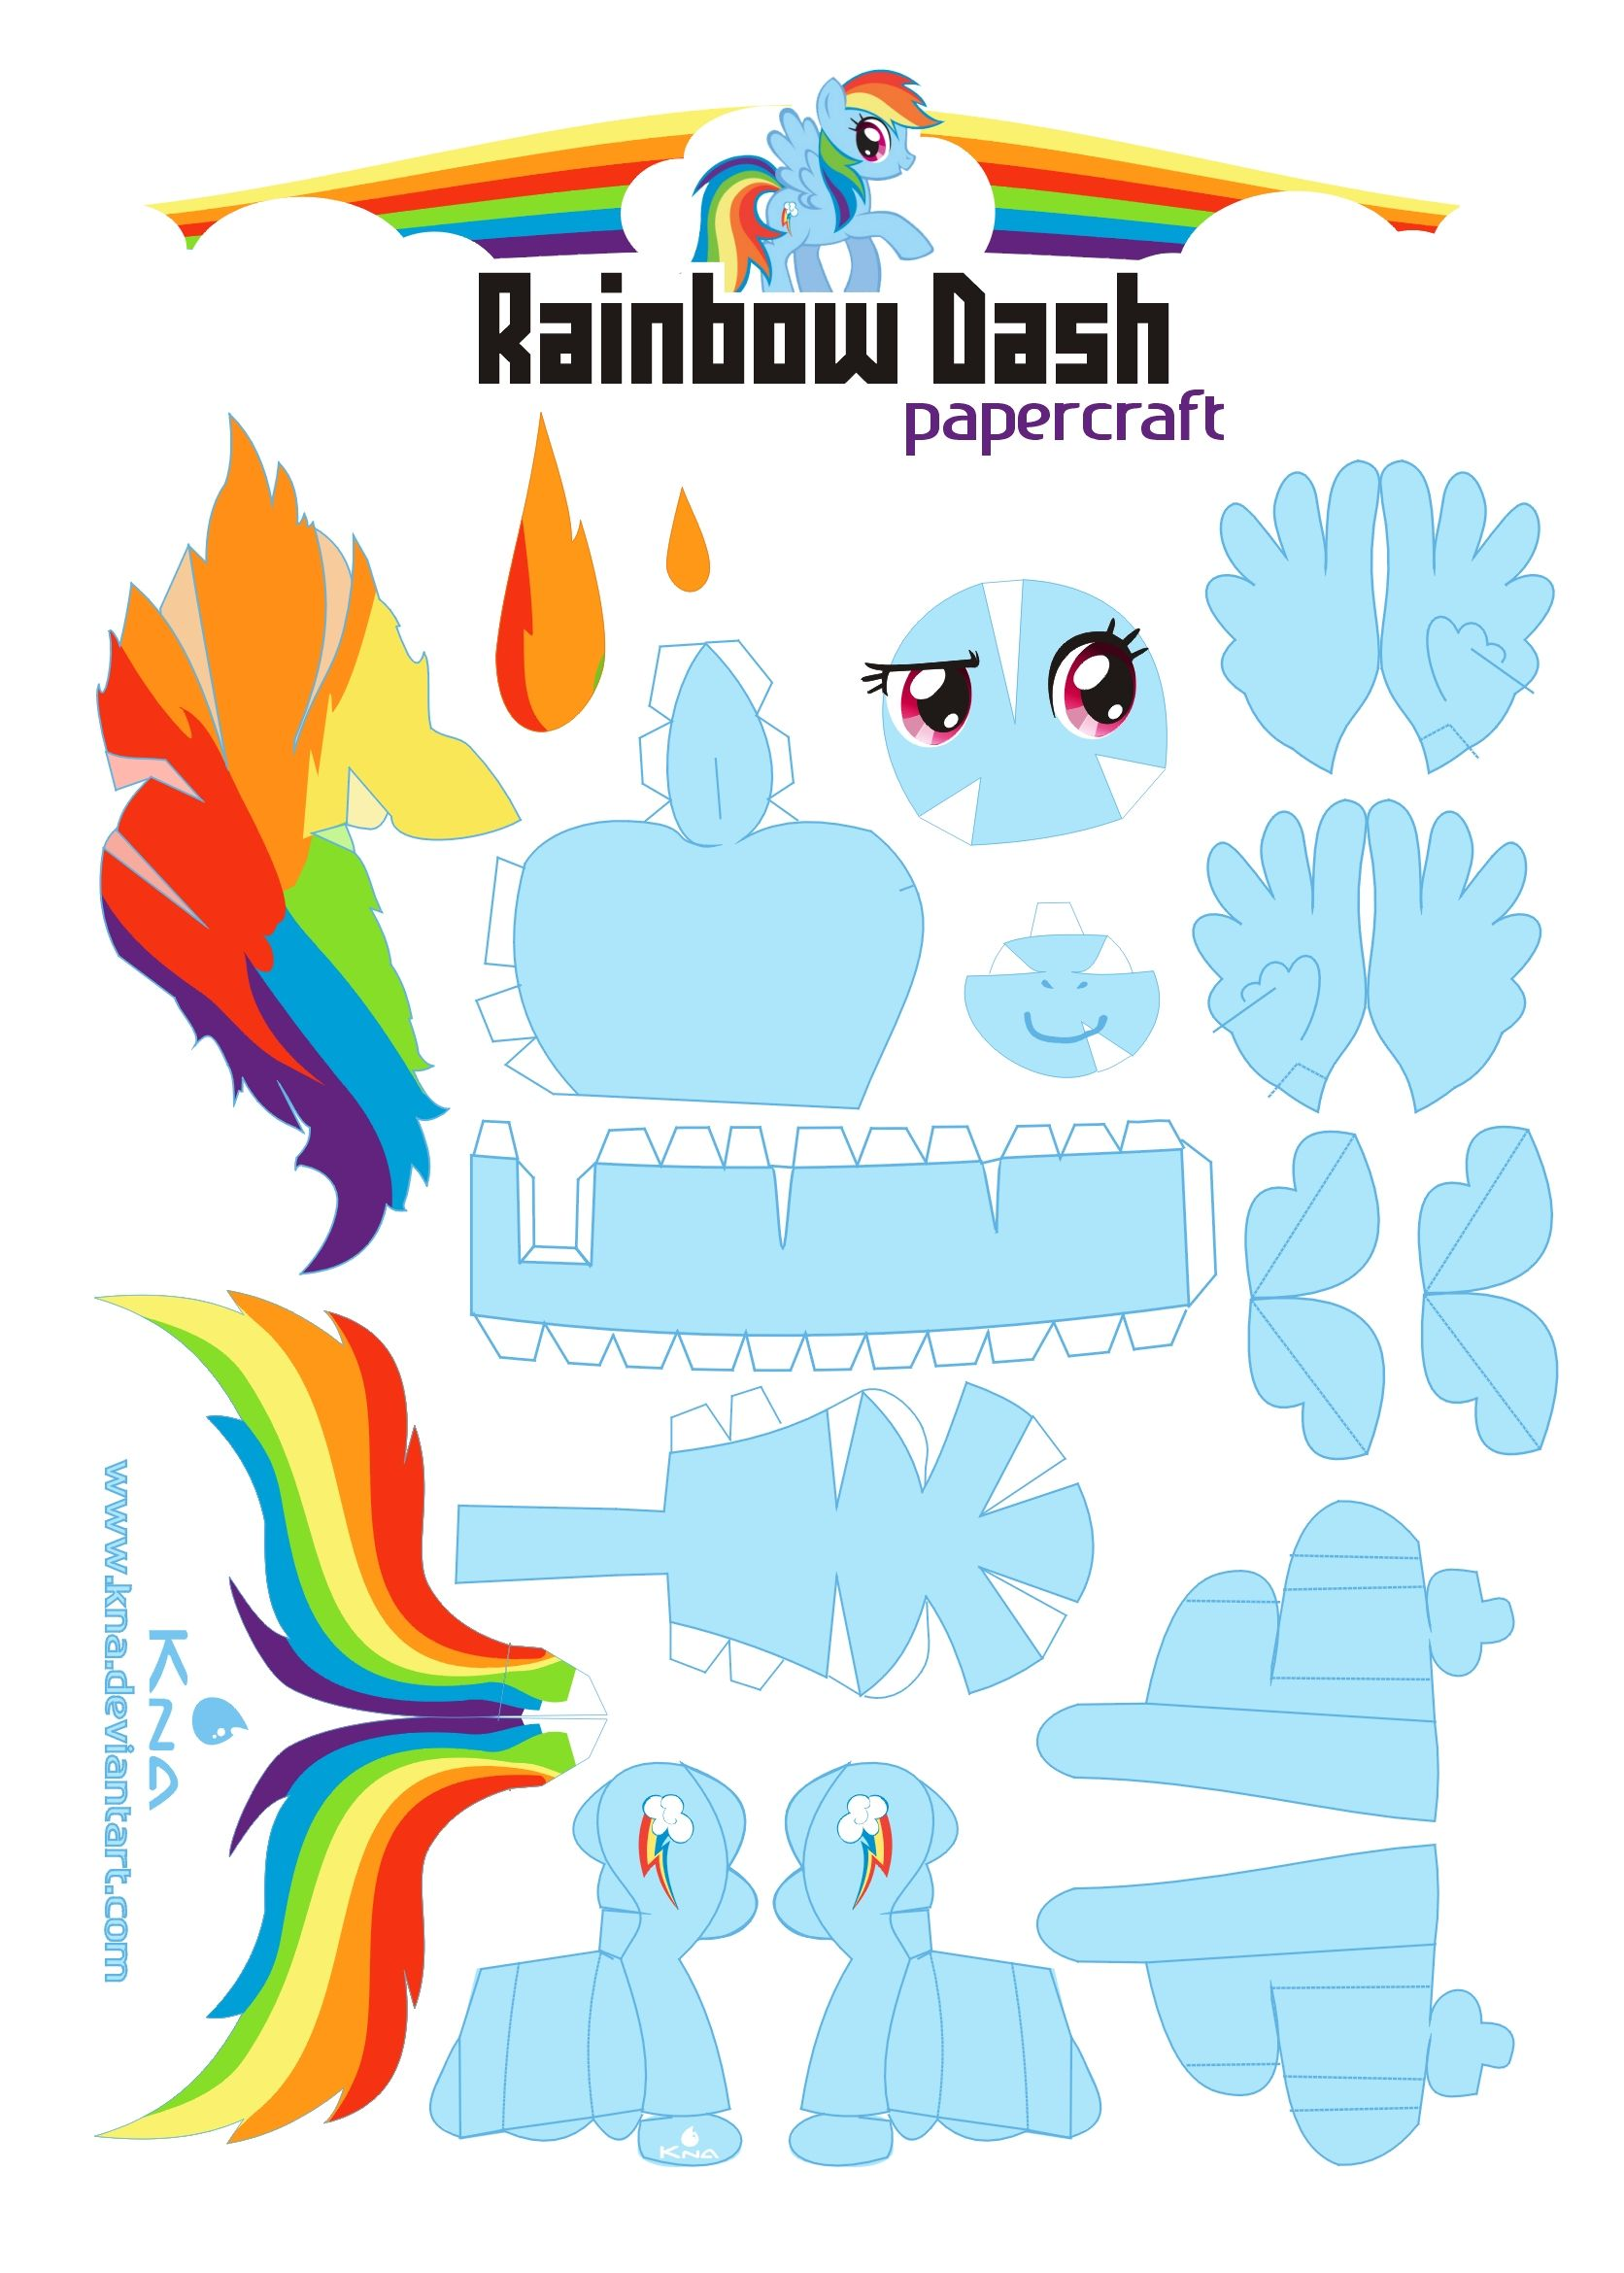 Rainbow Dash And Other Mlp Characters In Paper